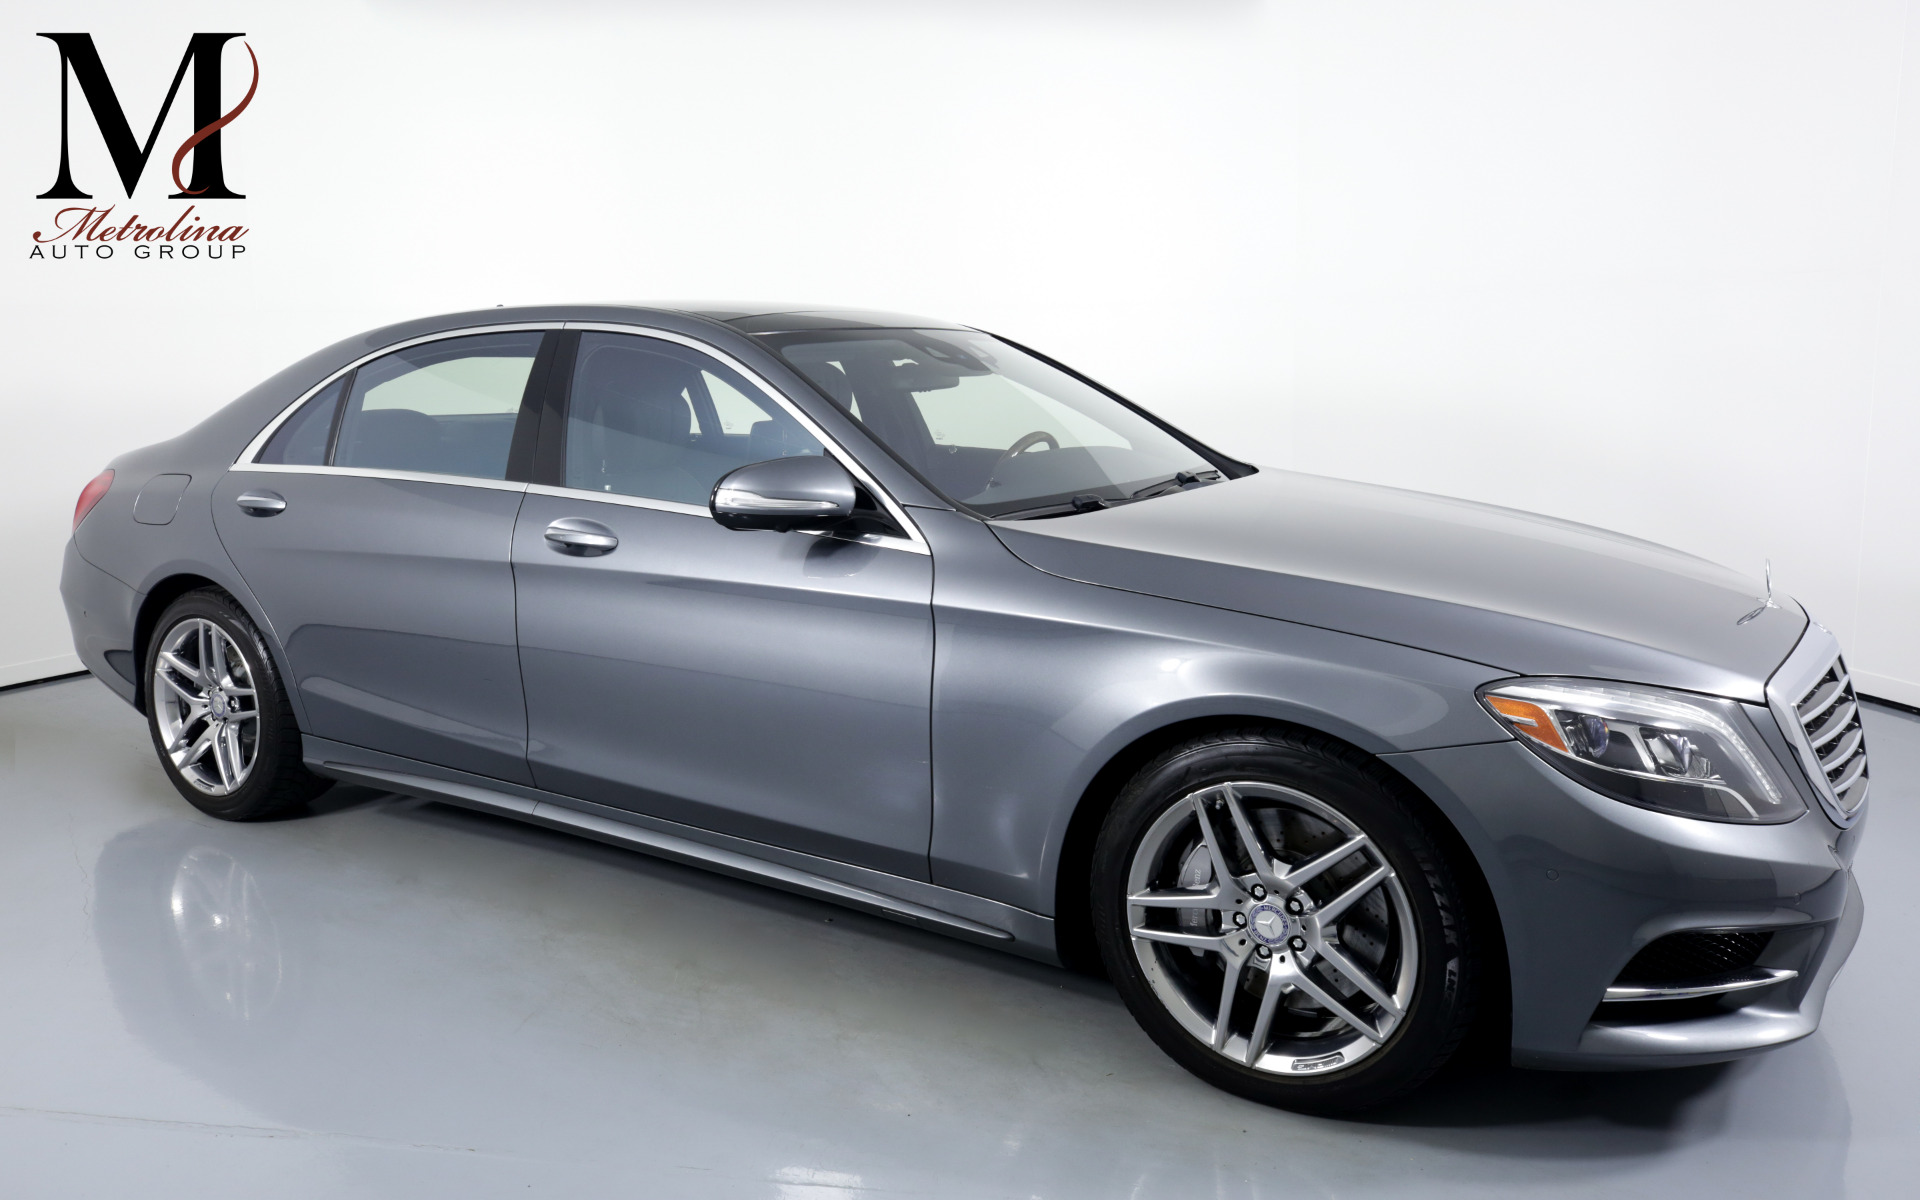 Used 2017 Mercedes-Benz S-Class S 550 4MATIC AWD 4dr Sedan for sale Sold at Metrolina Auto Group in Charlotte NC 28217 - 1